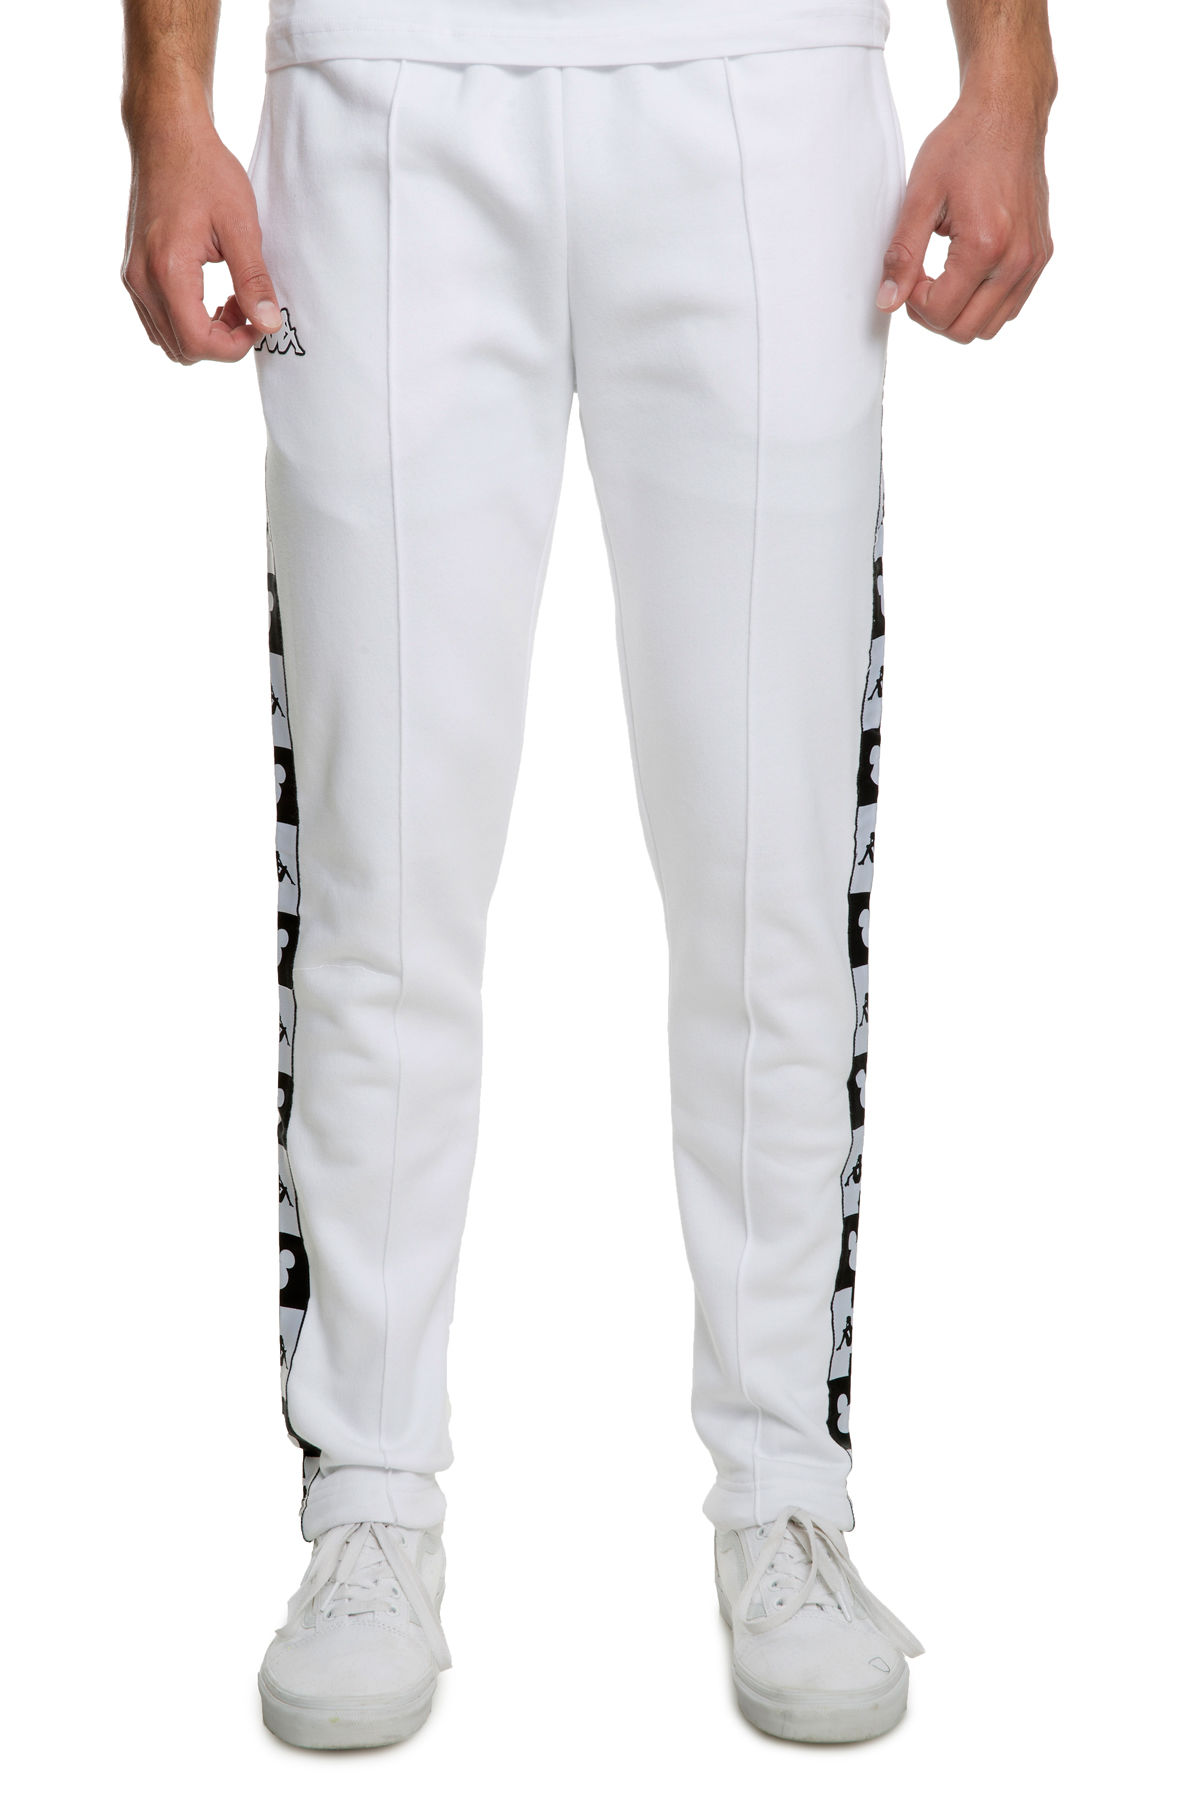 Image of The Authentic Alphonso Disney Pants in White